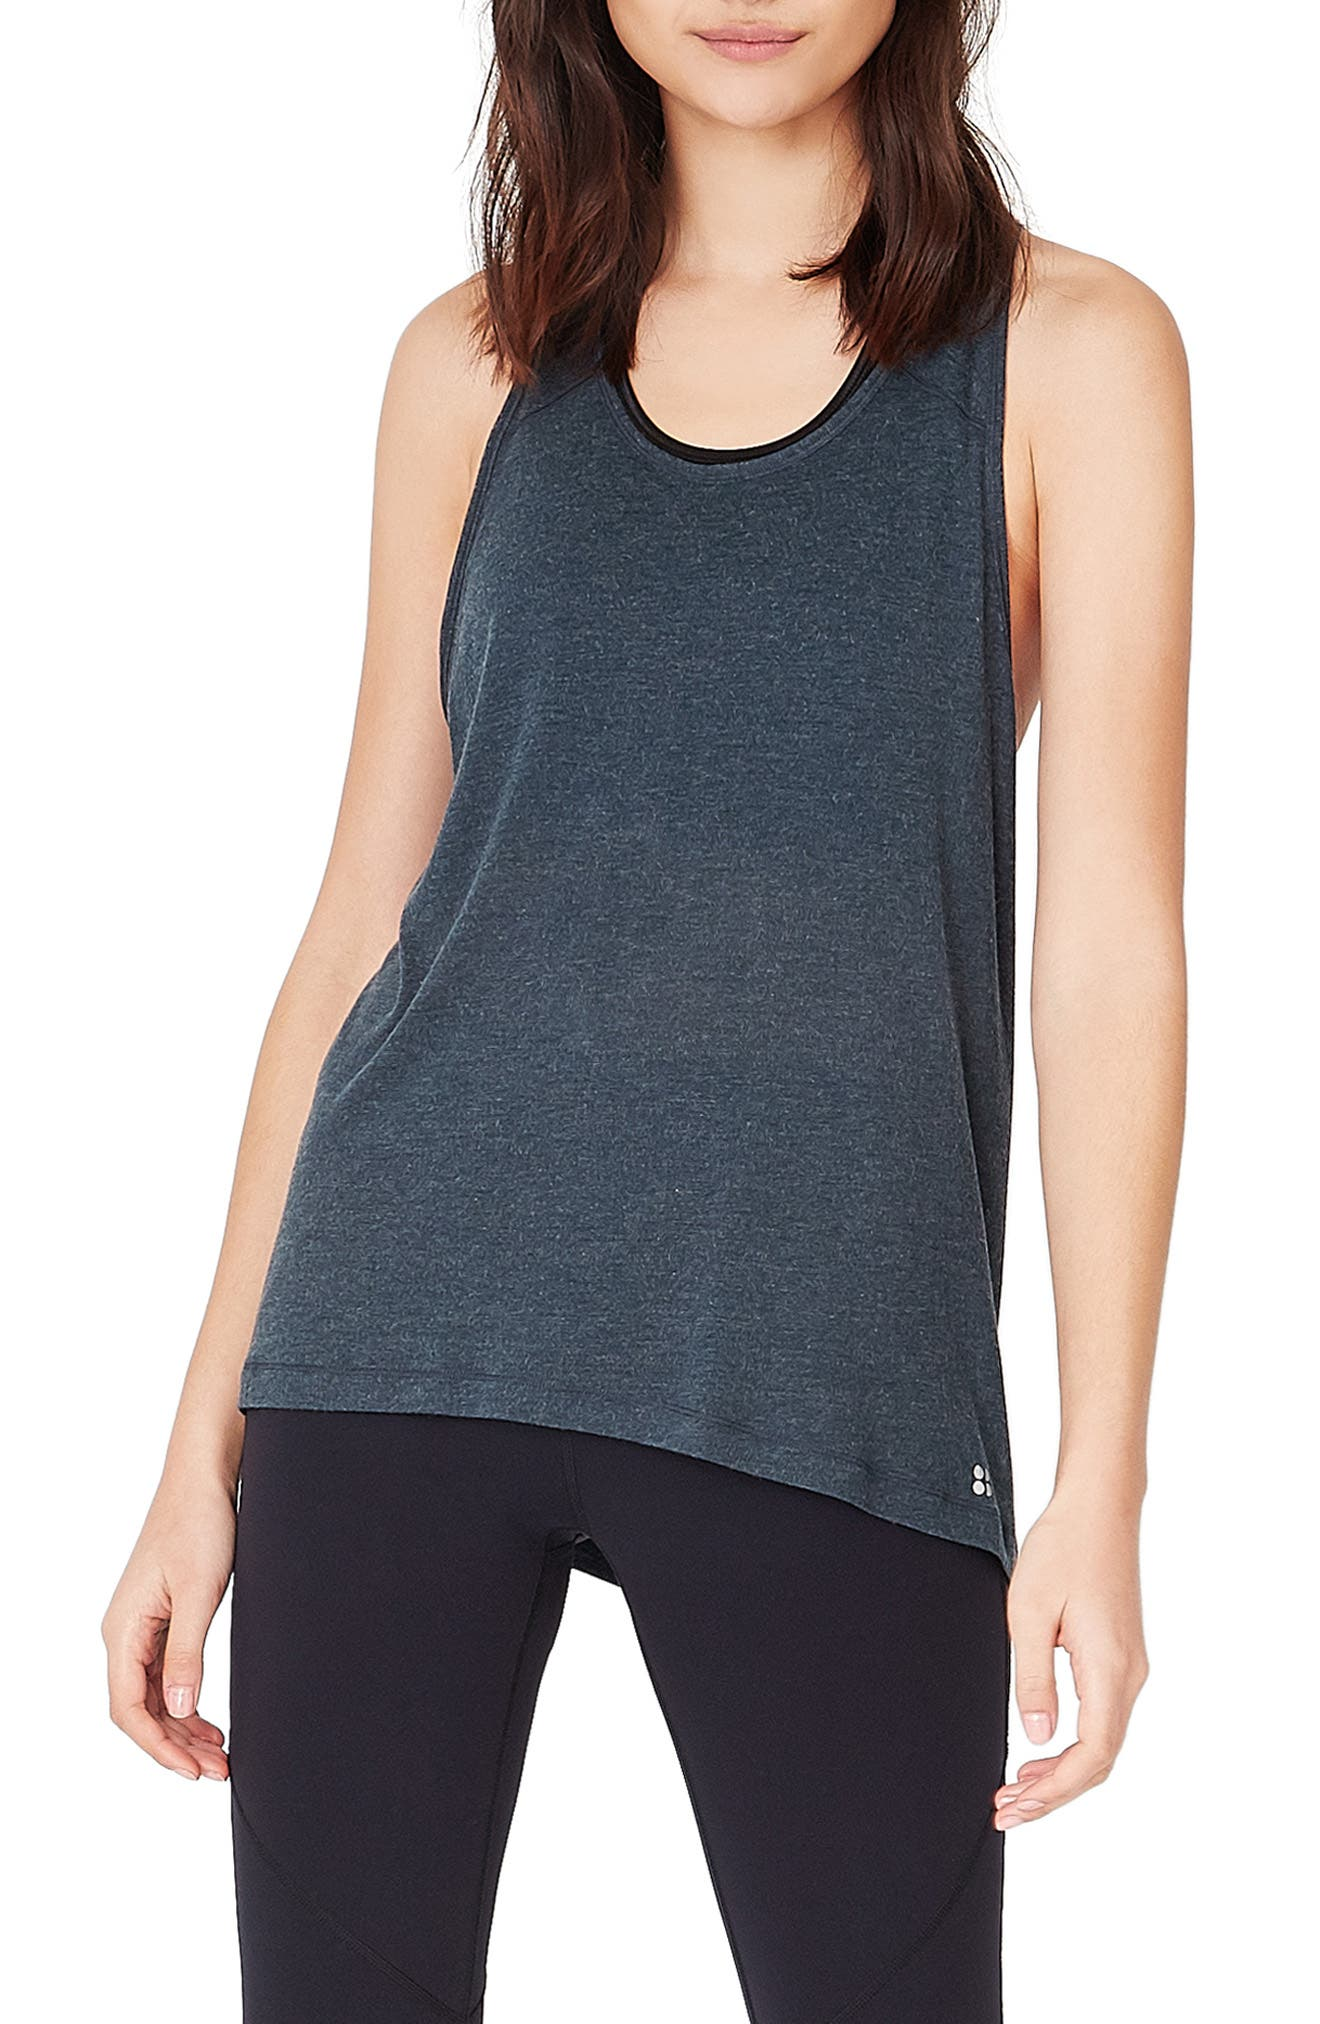 Compound Jersey Tank,                         Main,                         color, BEETLE BLUE MARL